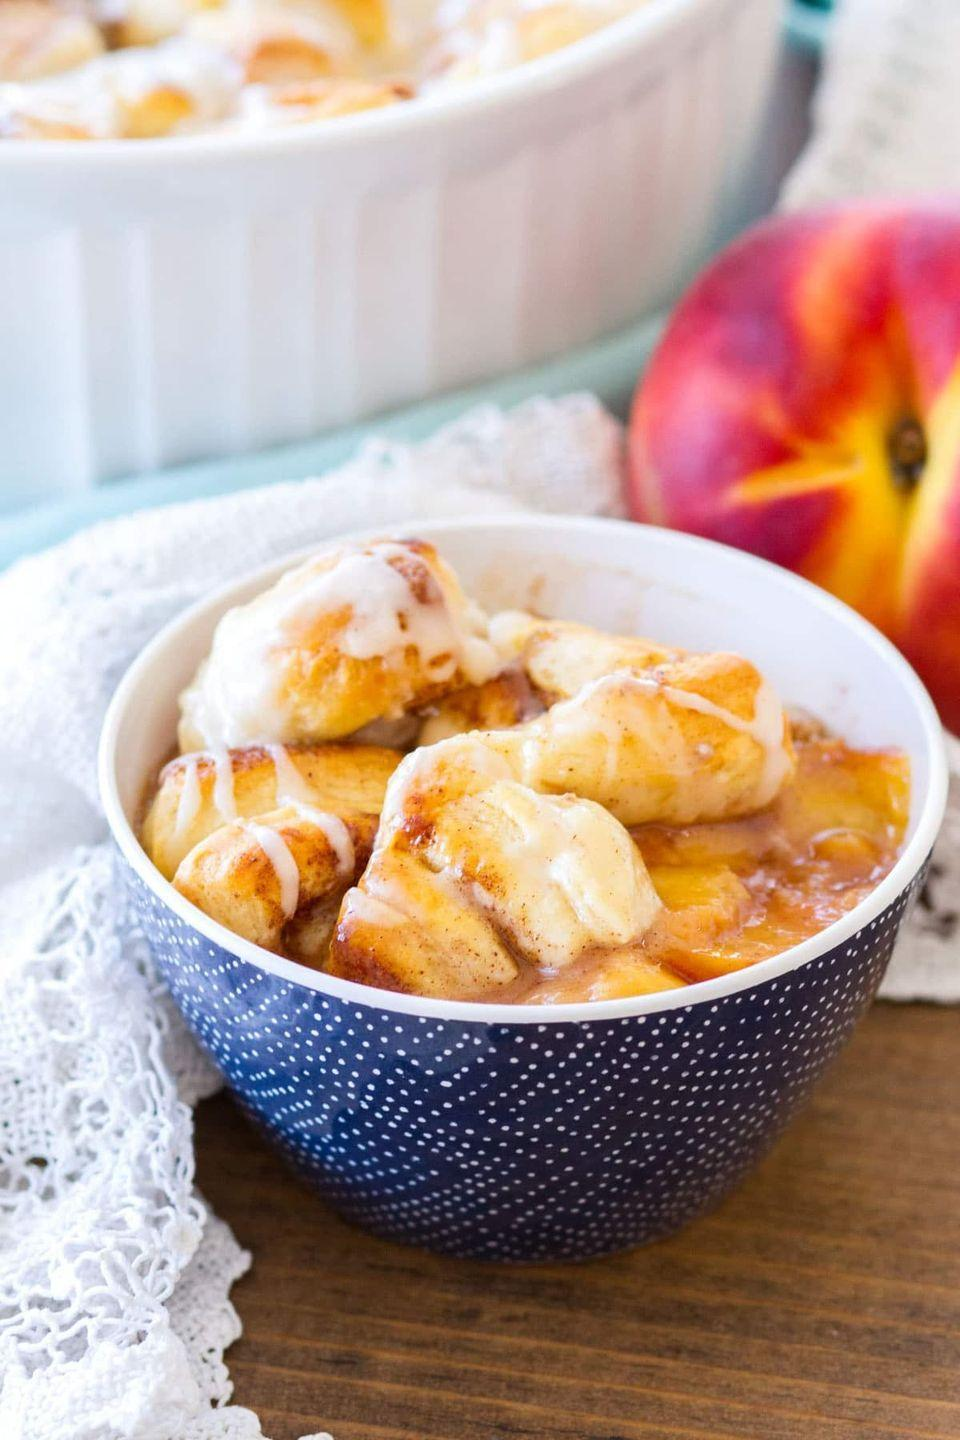 """<p>Looking to try a twist on your go-to peach cobbler? Give this version a go—it's like two delicious desserts in one.</p><p><strong>Get the recipe at <a href=""""https://www.julieseatsandtreats.com/easy-cinnamon-roll-peach-cobbler/"""" rel=""""nofollow noopener"""" target=""""_blank"""" data-ylk=""""slk:Julie's Eats and Treats"""" class=""""link rapid-noclick-resp"""">Julie's Eats and Treats</a>.</strong></p><p><a class=""""link rapid-noclick-resp"""" href=""""https://go.redirectingat.com?id=74968X1596630&url=https%3A%2F%2Fwww.walmart.com%2Fsearch%2F%3Fquery%3Dpioneer%2Bwoman%2Bcooking%2Btools&sref=https%3A%2F%2Fwww.thepioneerwoman.com%2Ffood-cooking%2Frecipes%2Fg36382592%2Fpeach-desserts%2F"""" rel=""""nofollow noopener"""" target=""""_blank"""" data-ylk=""""slk:SHOP COOKING TOOLS"""">SHOP COOKING TOOLS</a></p>"""